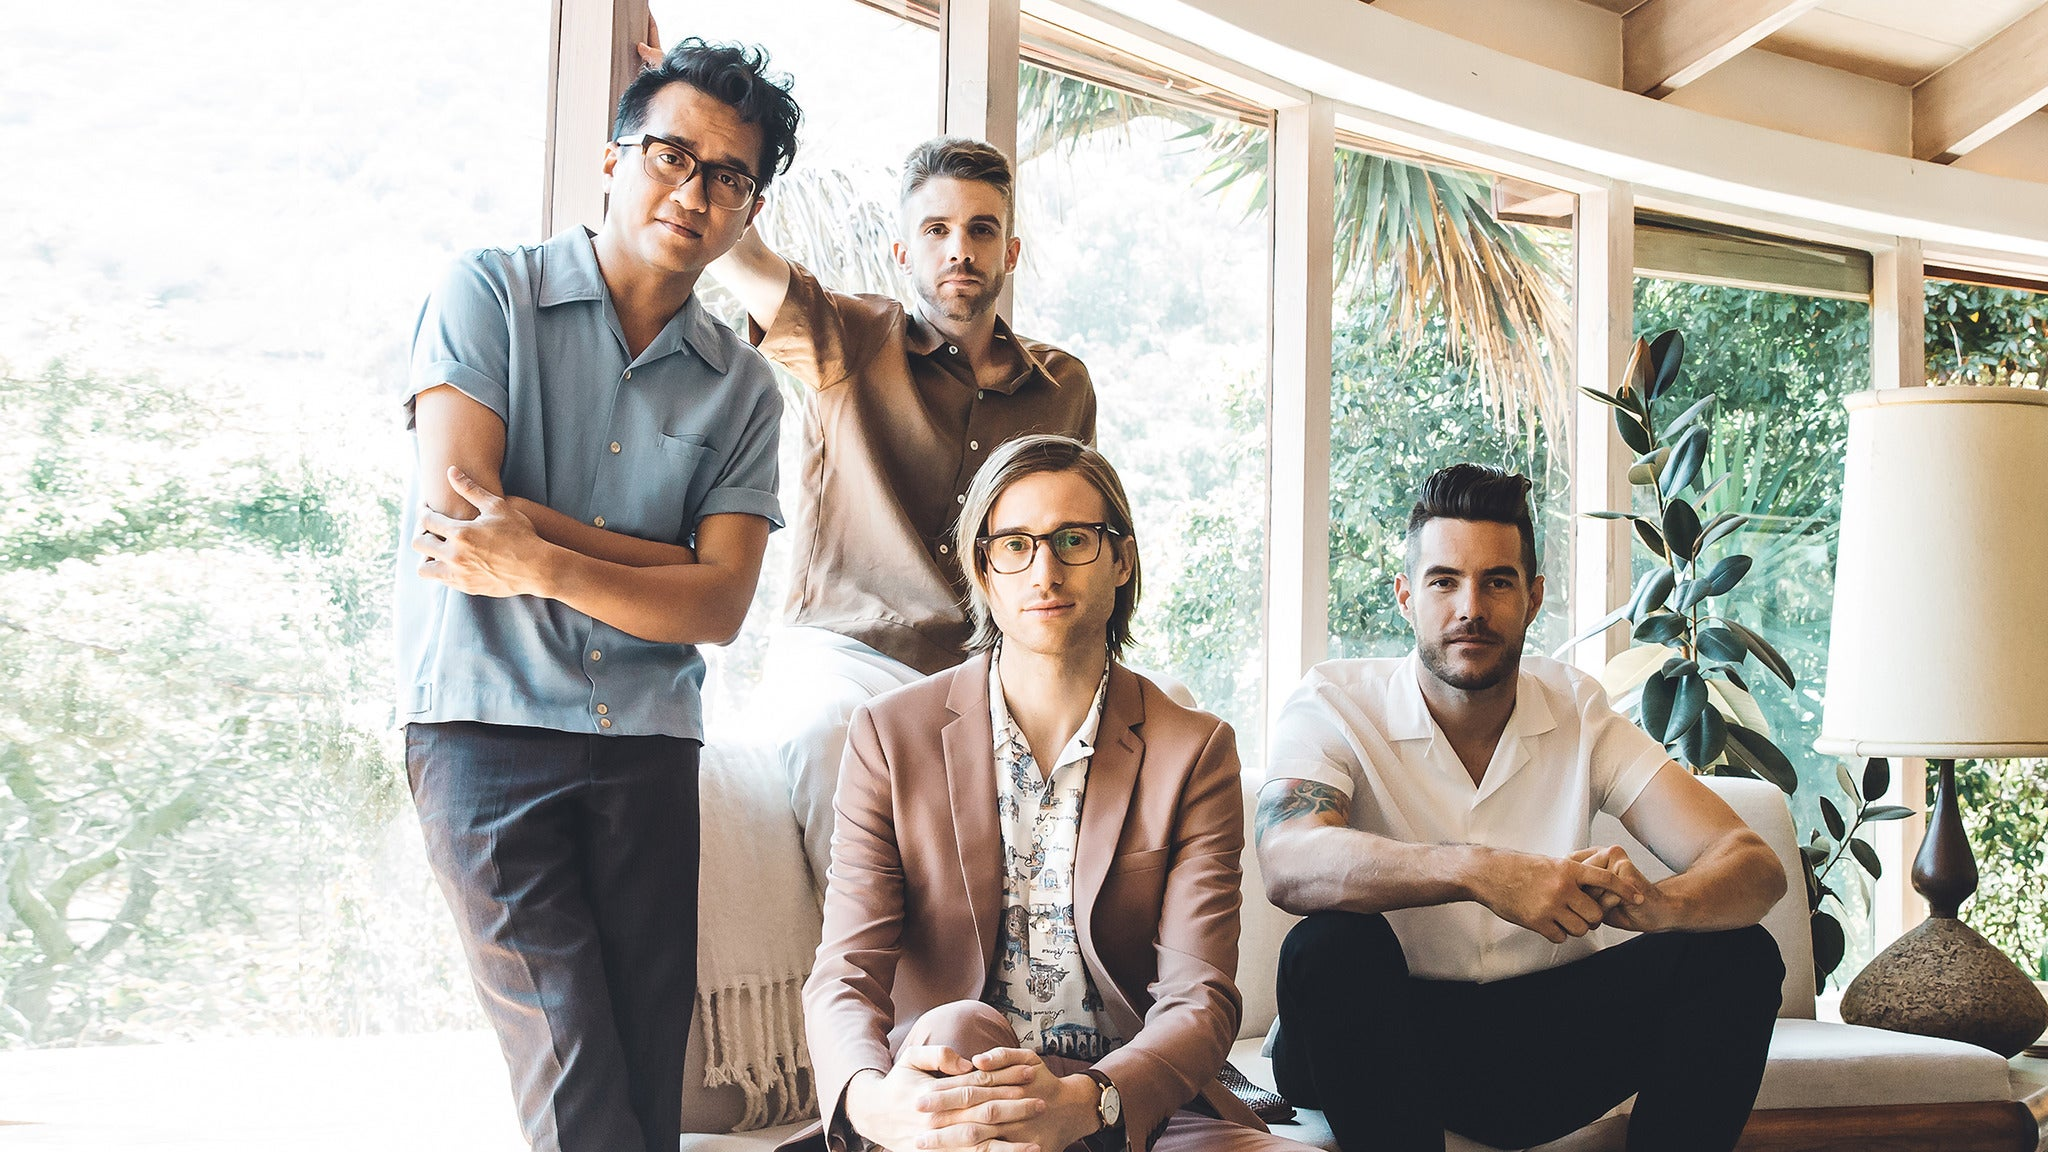 Saint Motel at The Wiltern - Los Angeles, CA 90010